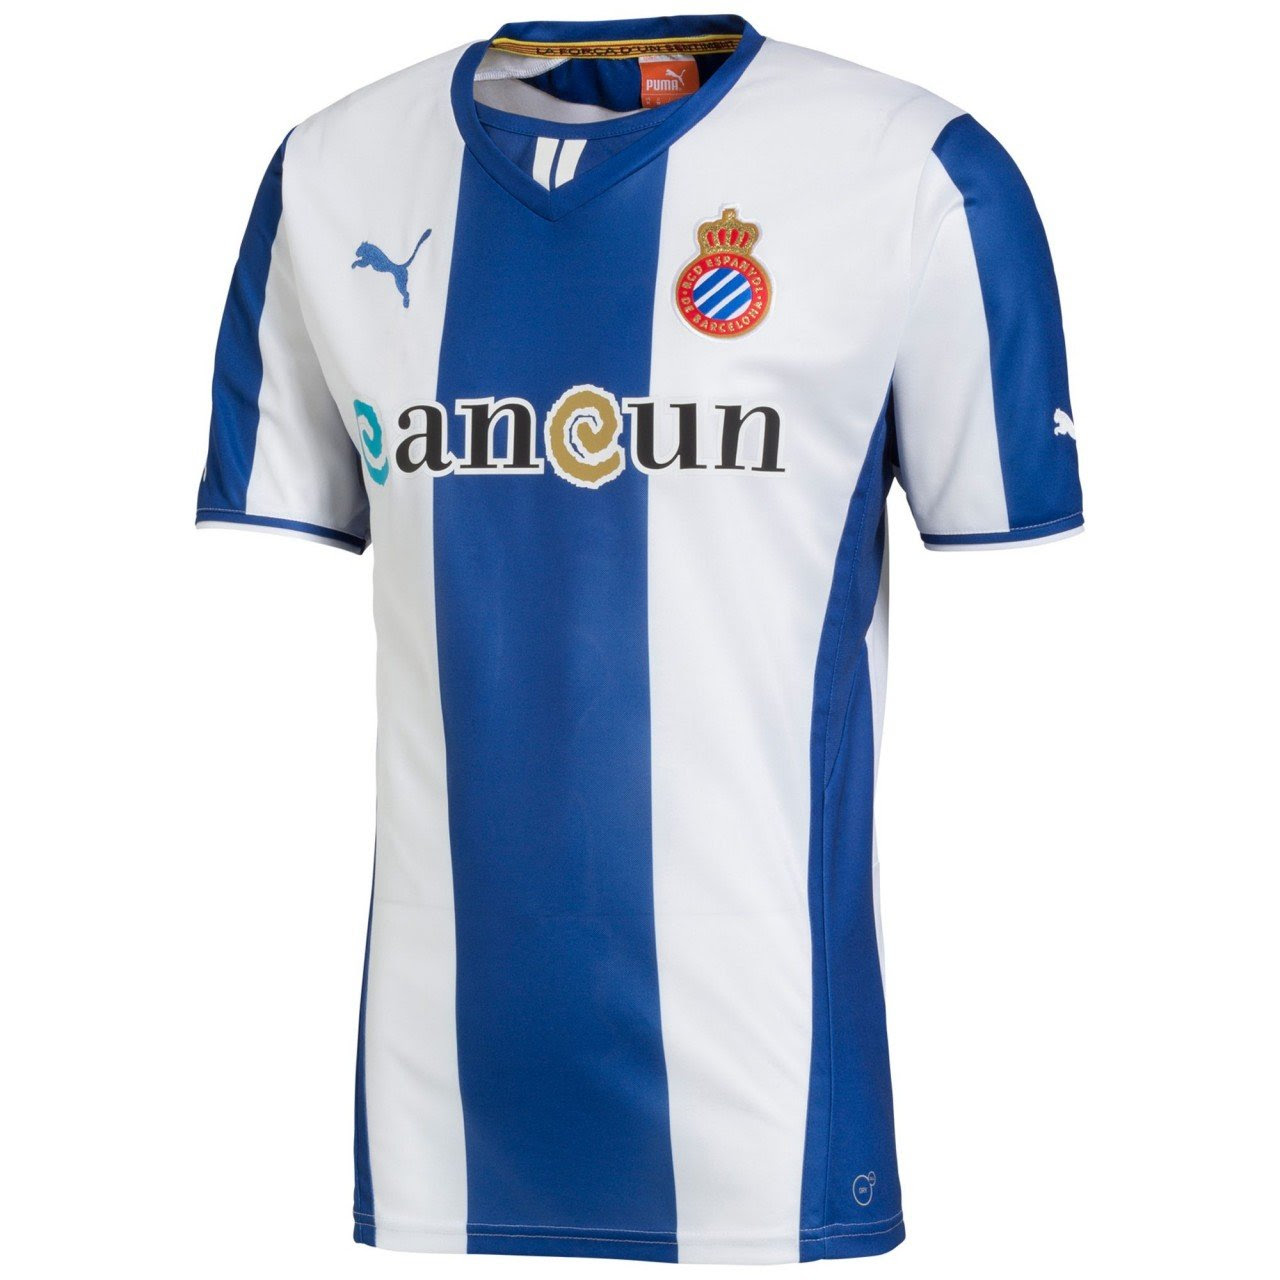 The white and blue side of the force of the RCD Espanyol de ...